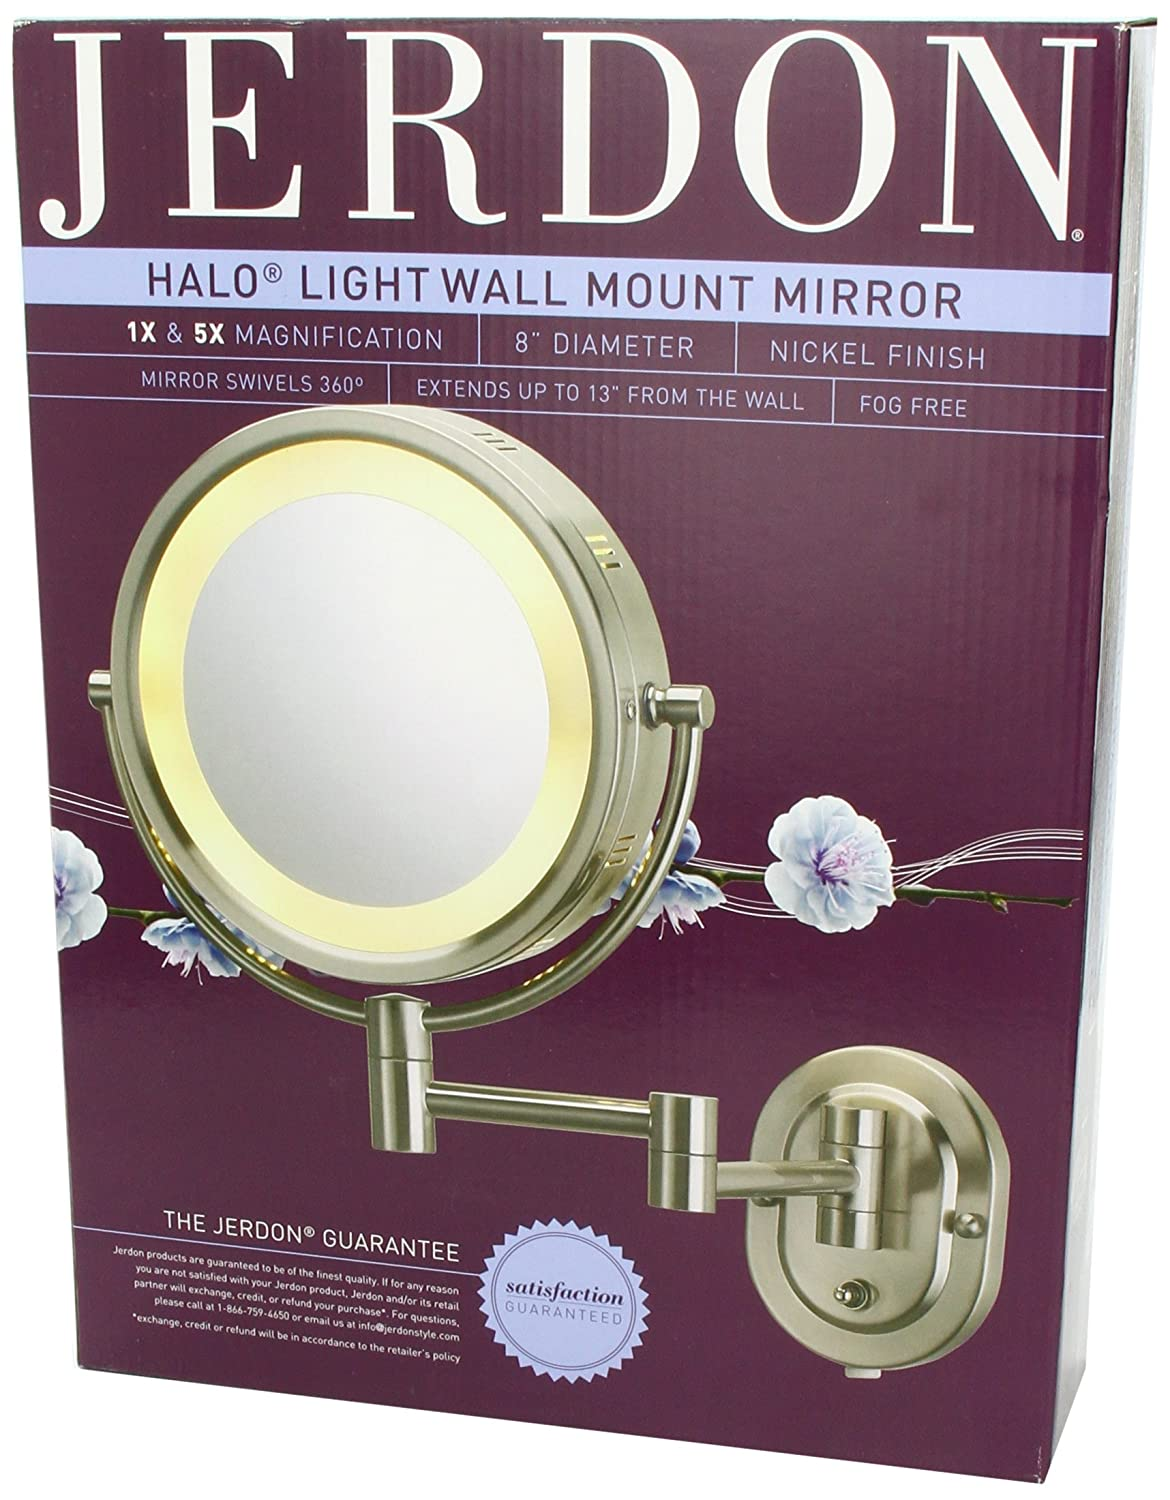 Amazon jerdon hl65n 8 inch lighted wall mount makeup mirror amazon jerdon hl65n 8 inch lighted wall mount makeup mirror with 5x magnification nickel finish personal makeup mirrors beauty amipublicfo Gallery